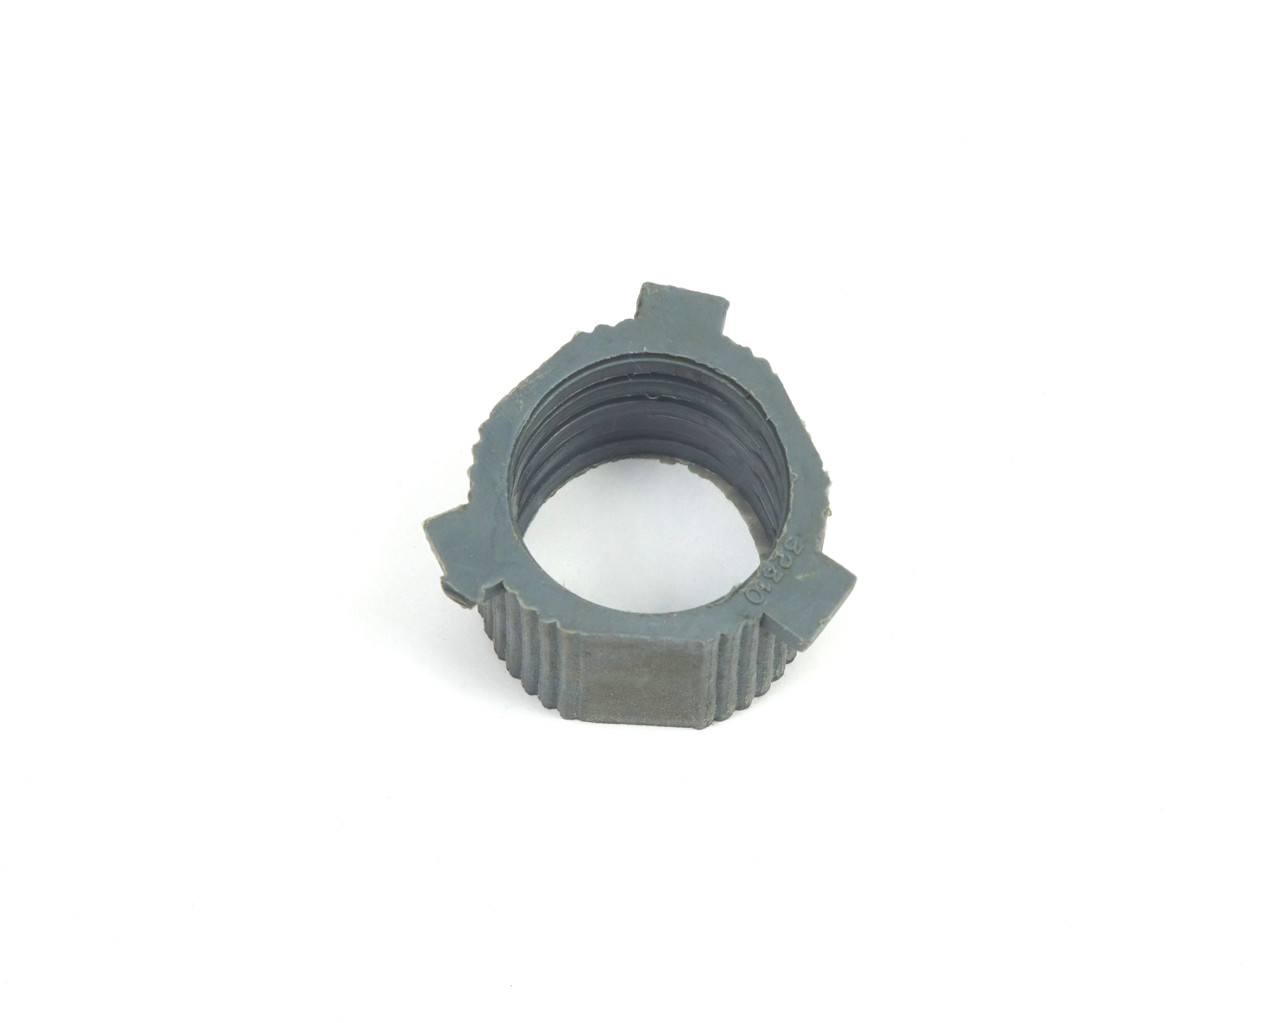 Steering Rack Inner Bushing - 1985 1/2